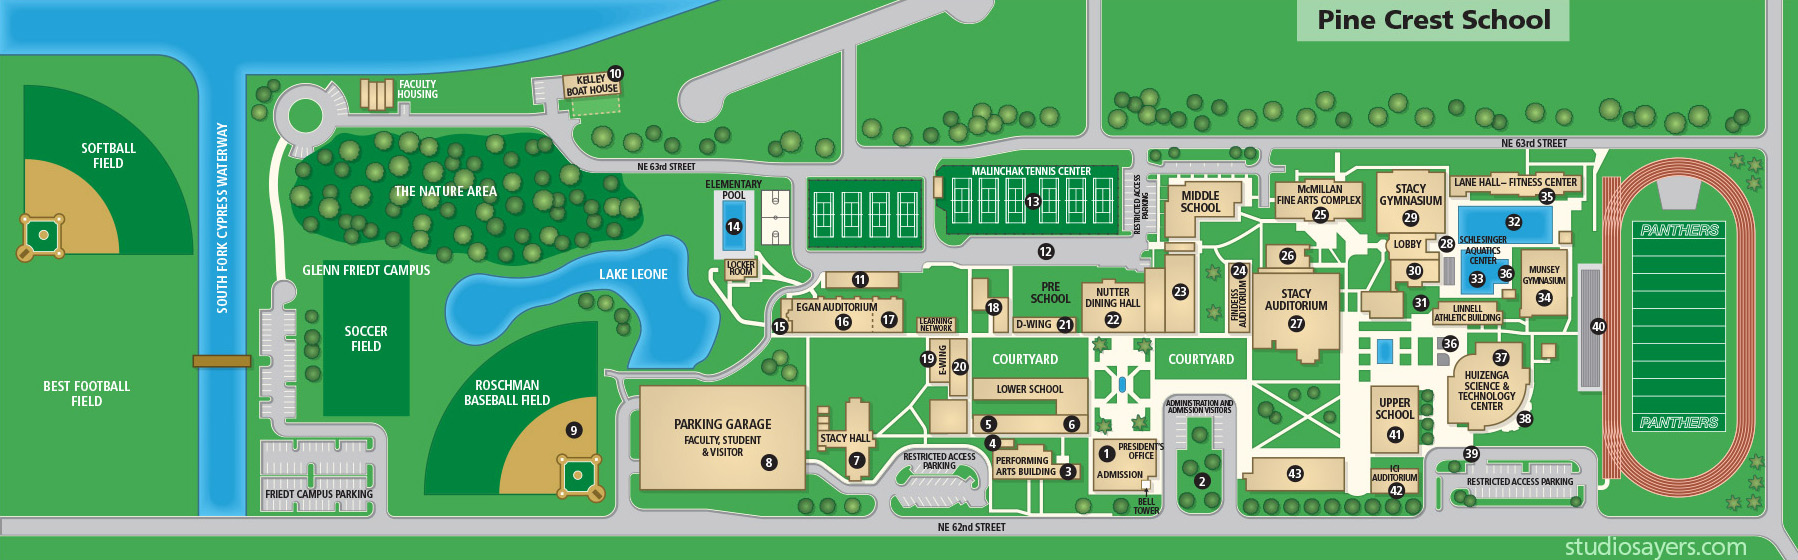 Pine Crest School visitors guide map